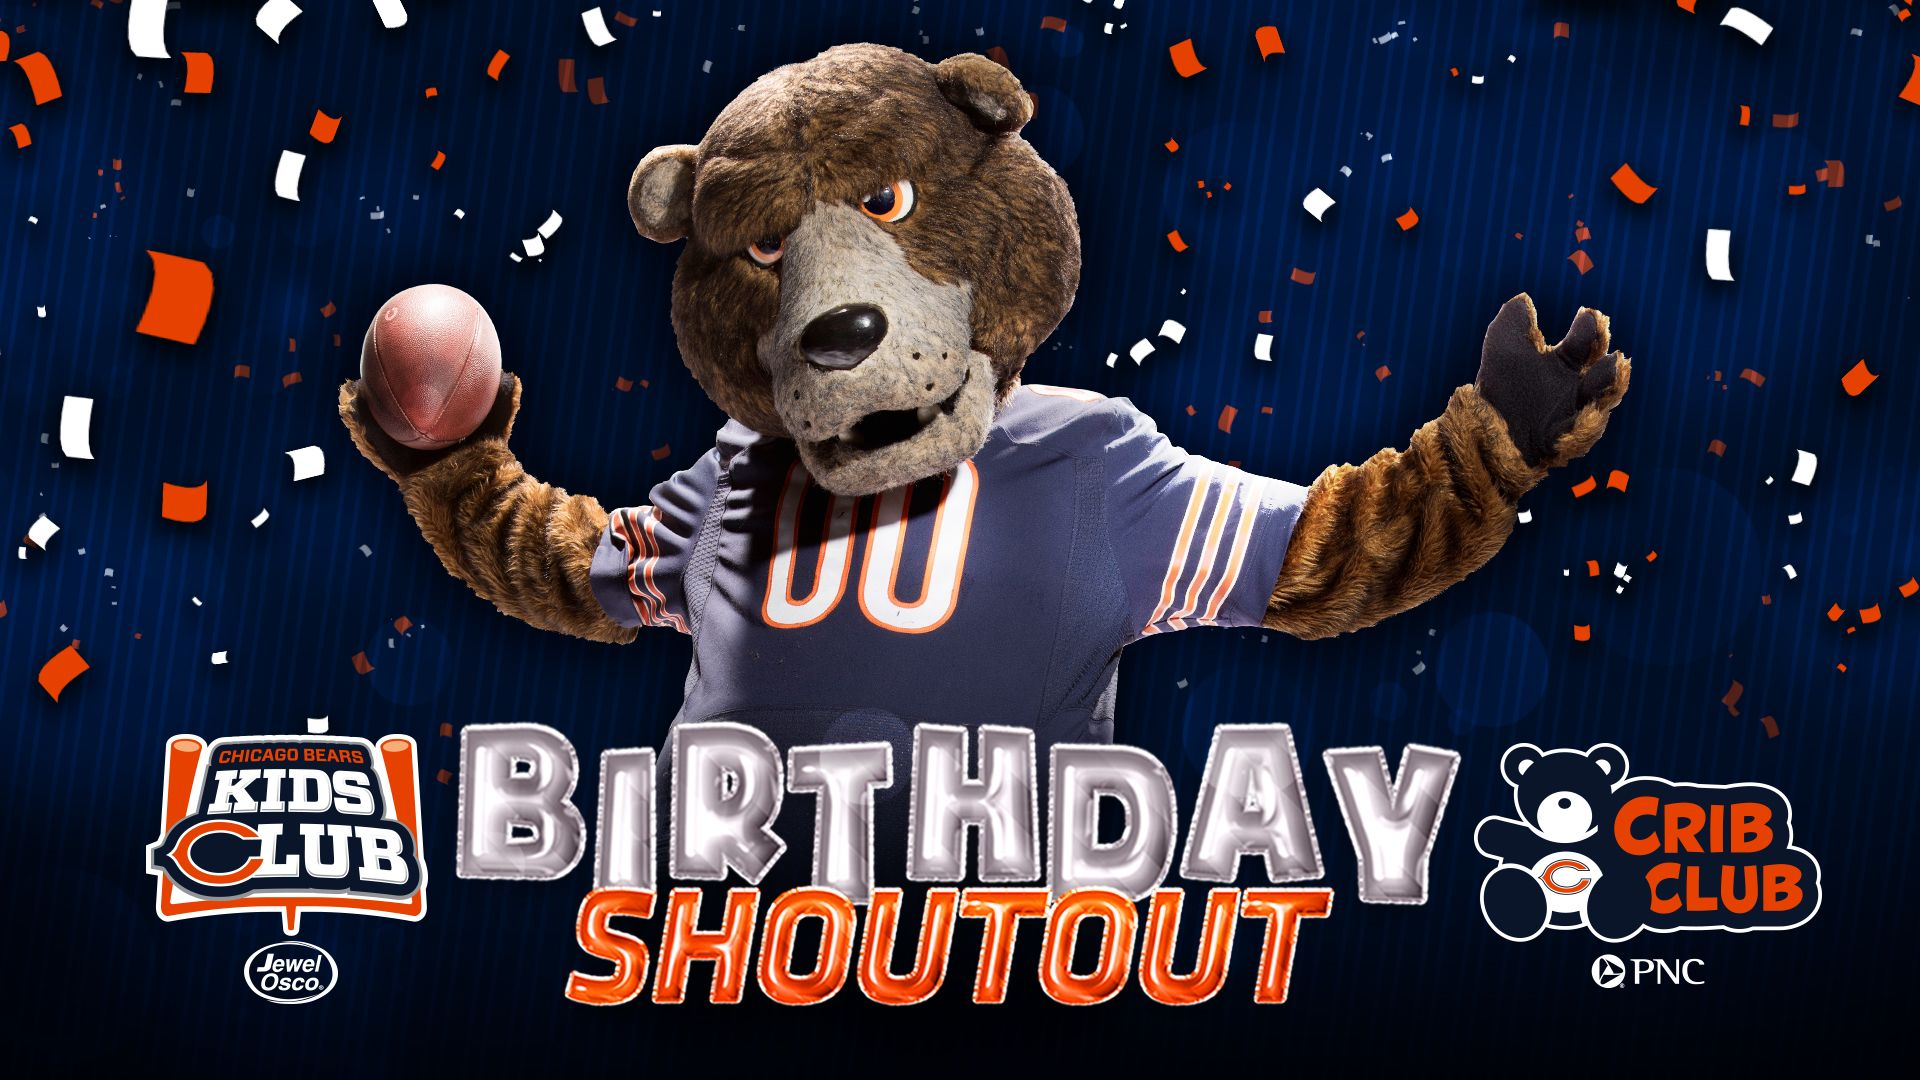 staley-birthday-shoutout-promo-072320